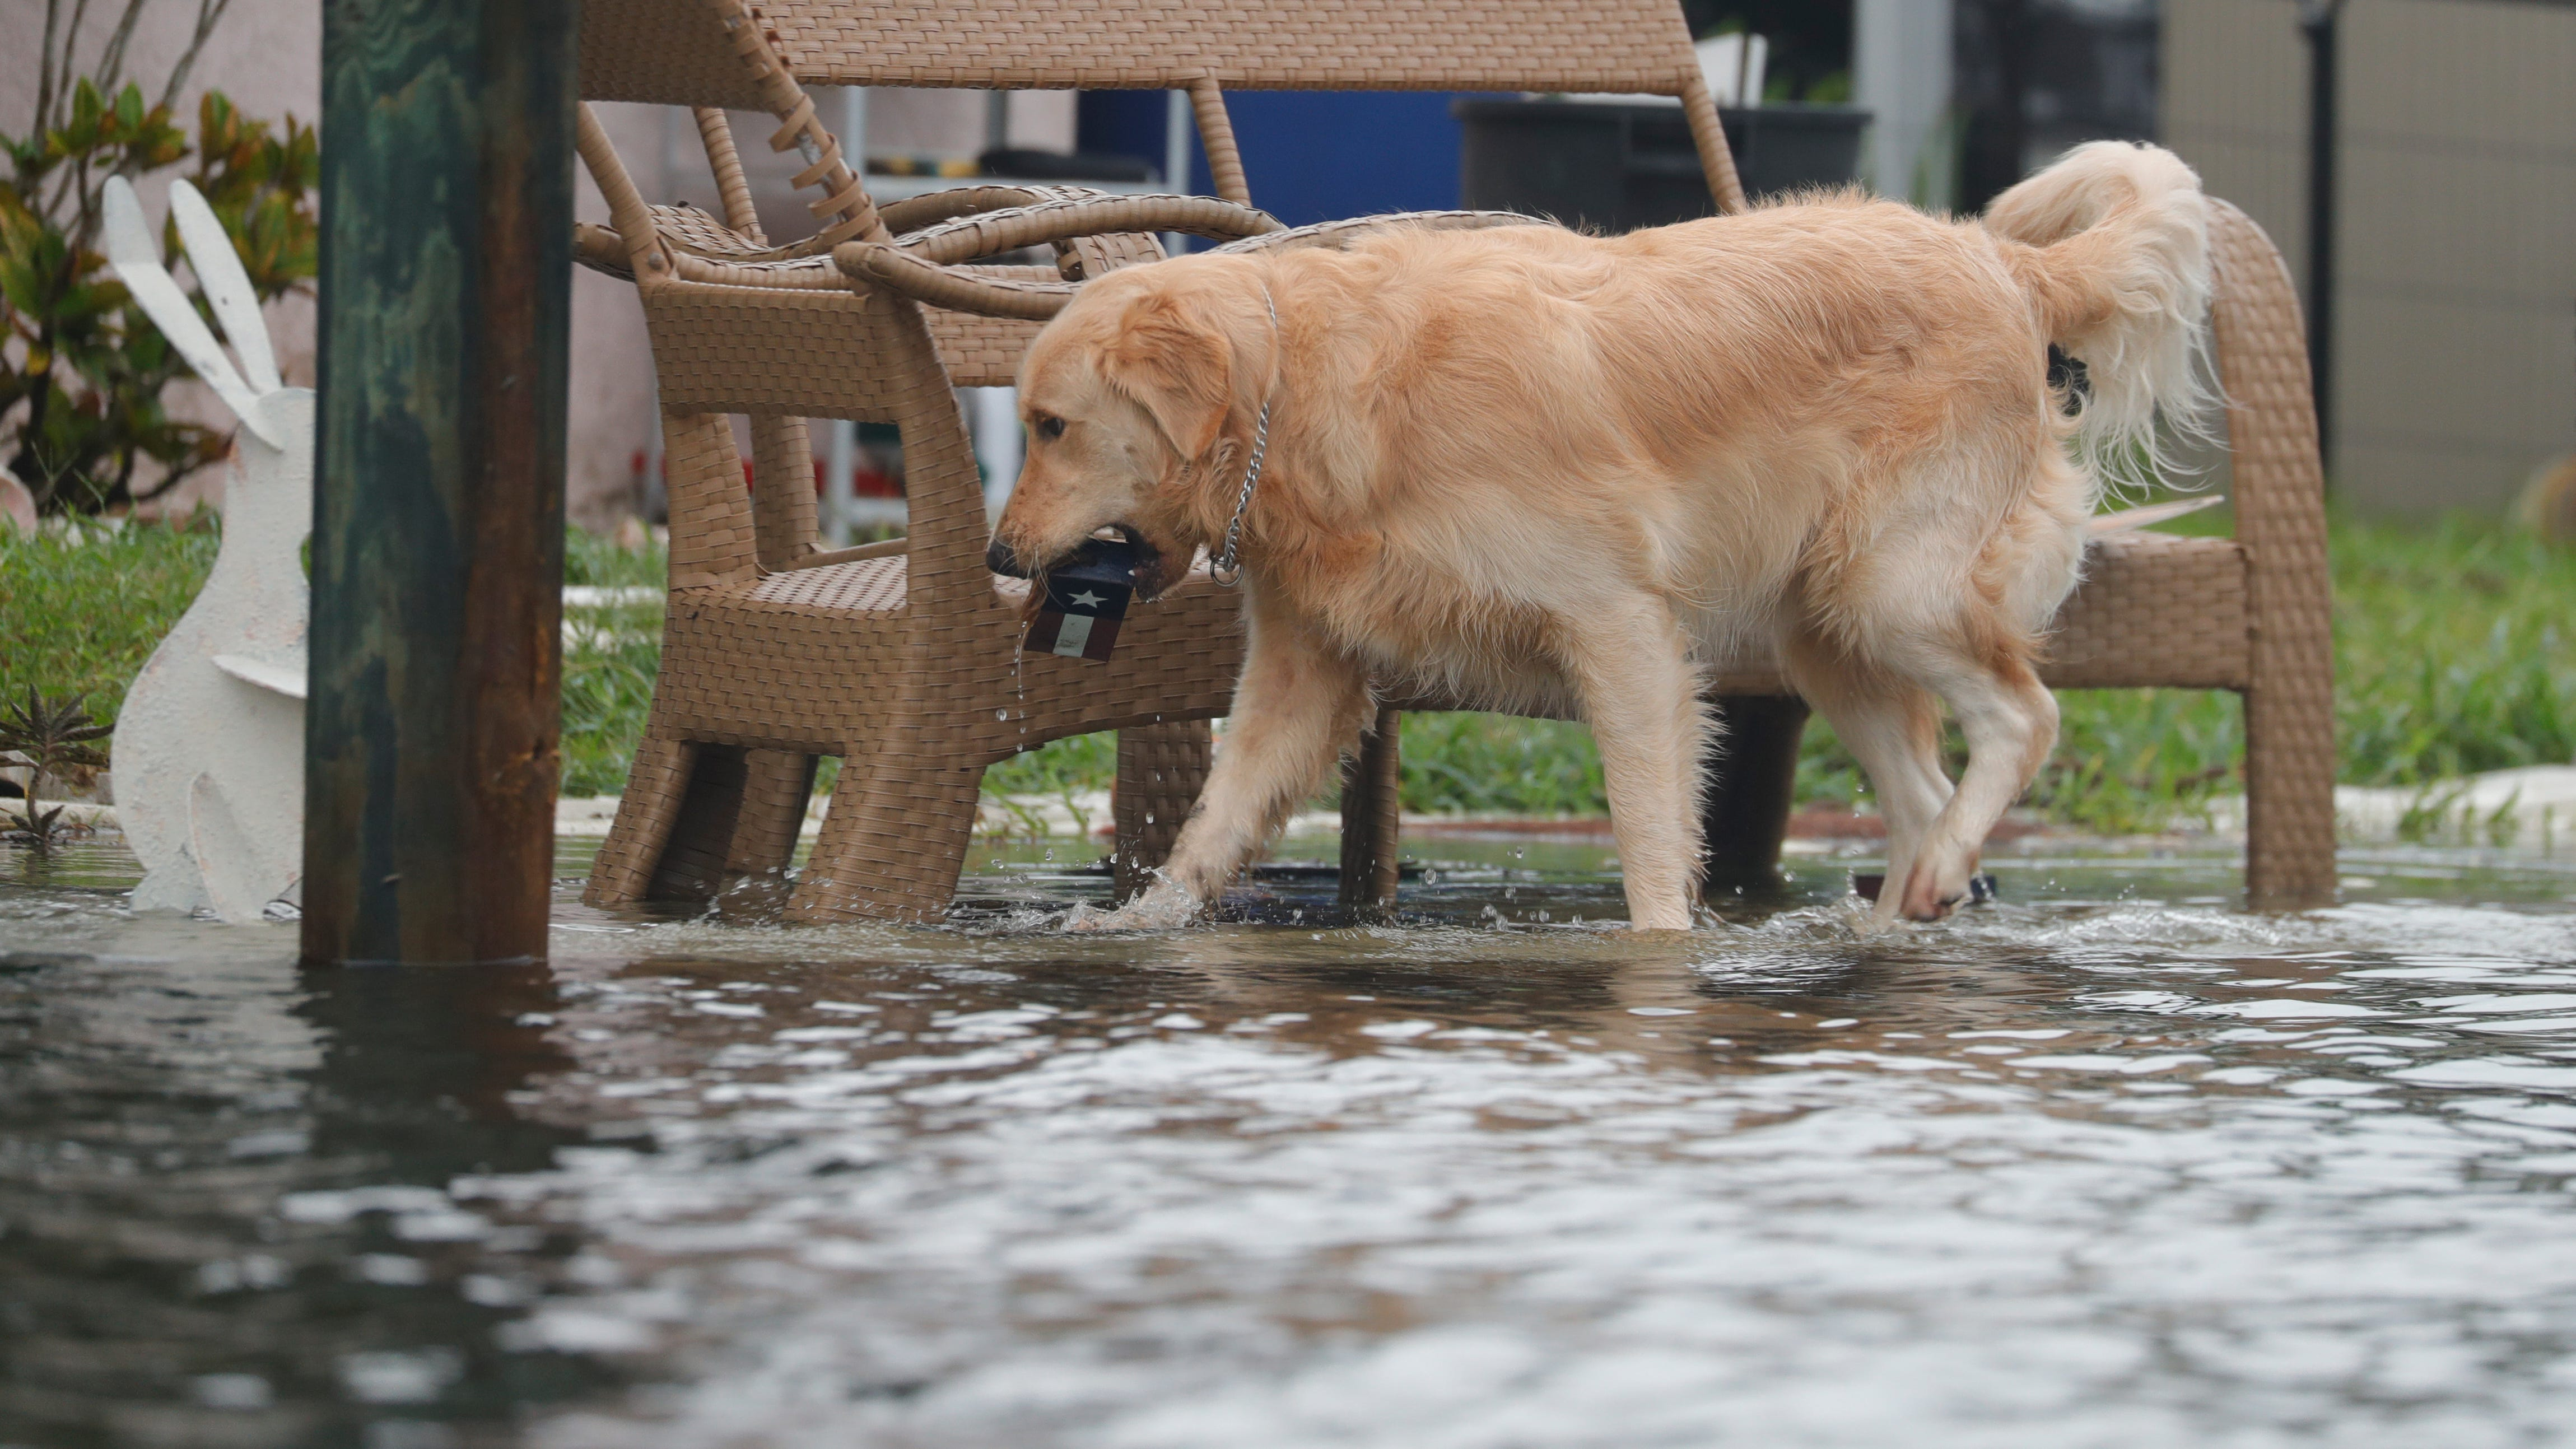 Duke, the pet dog of residents in Matlacha, wades through rising waters in his backyard to collect a toy as the winds and rain from Hurricane EtaÊimpact the area Wednesday, Nov, 11, 2020.